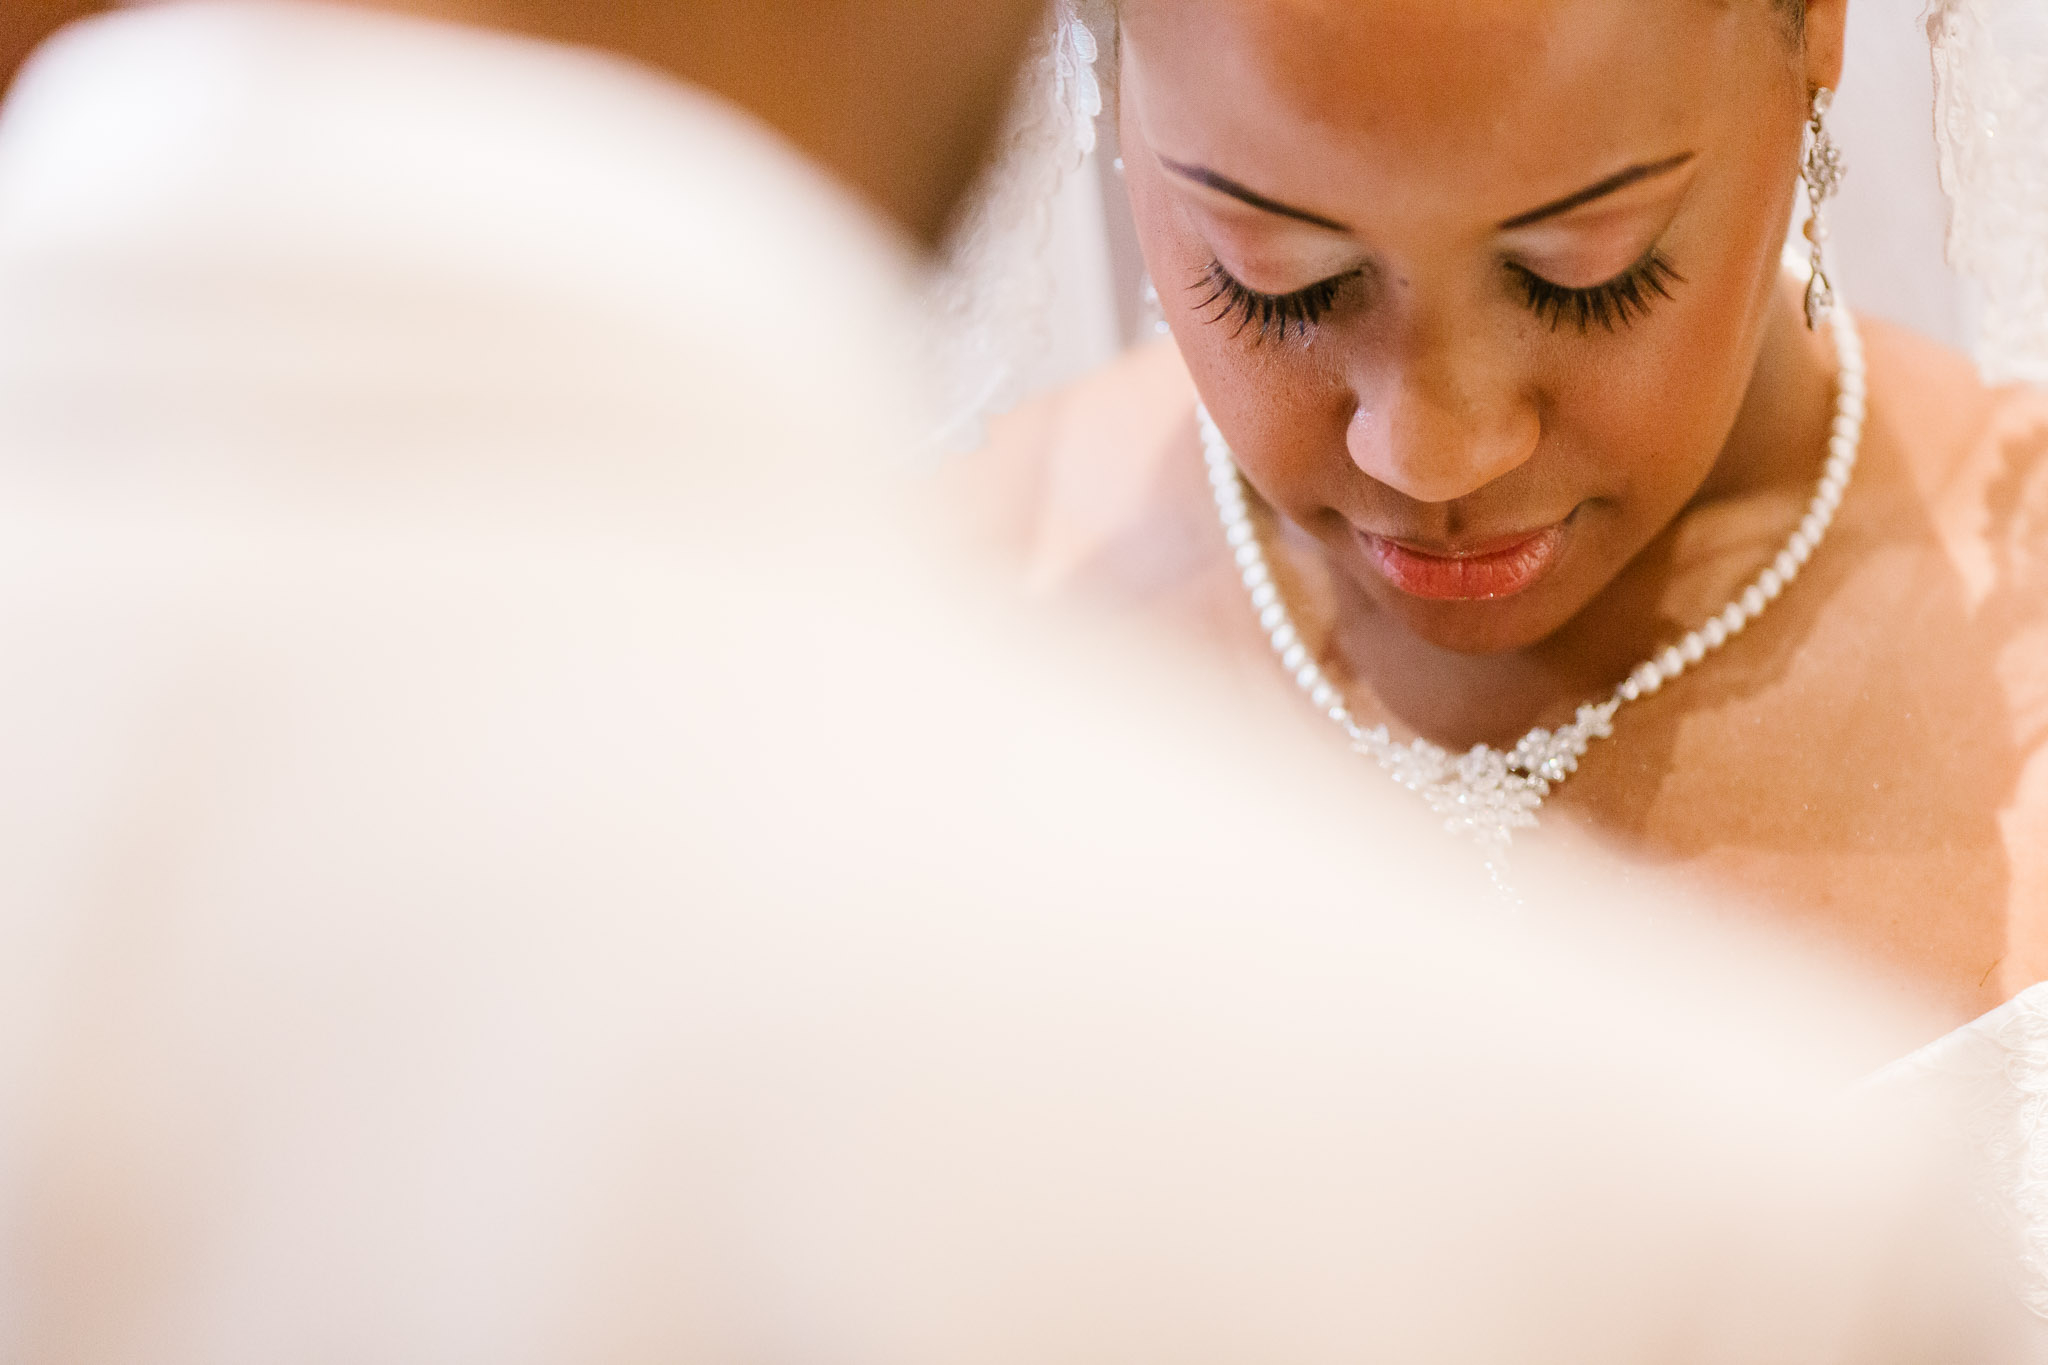 The bride engaged in a quiet moment during her Buffalo wedding ceremony